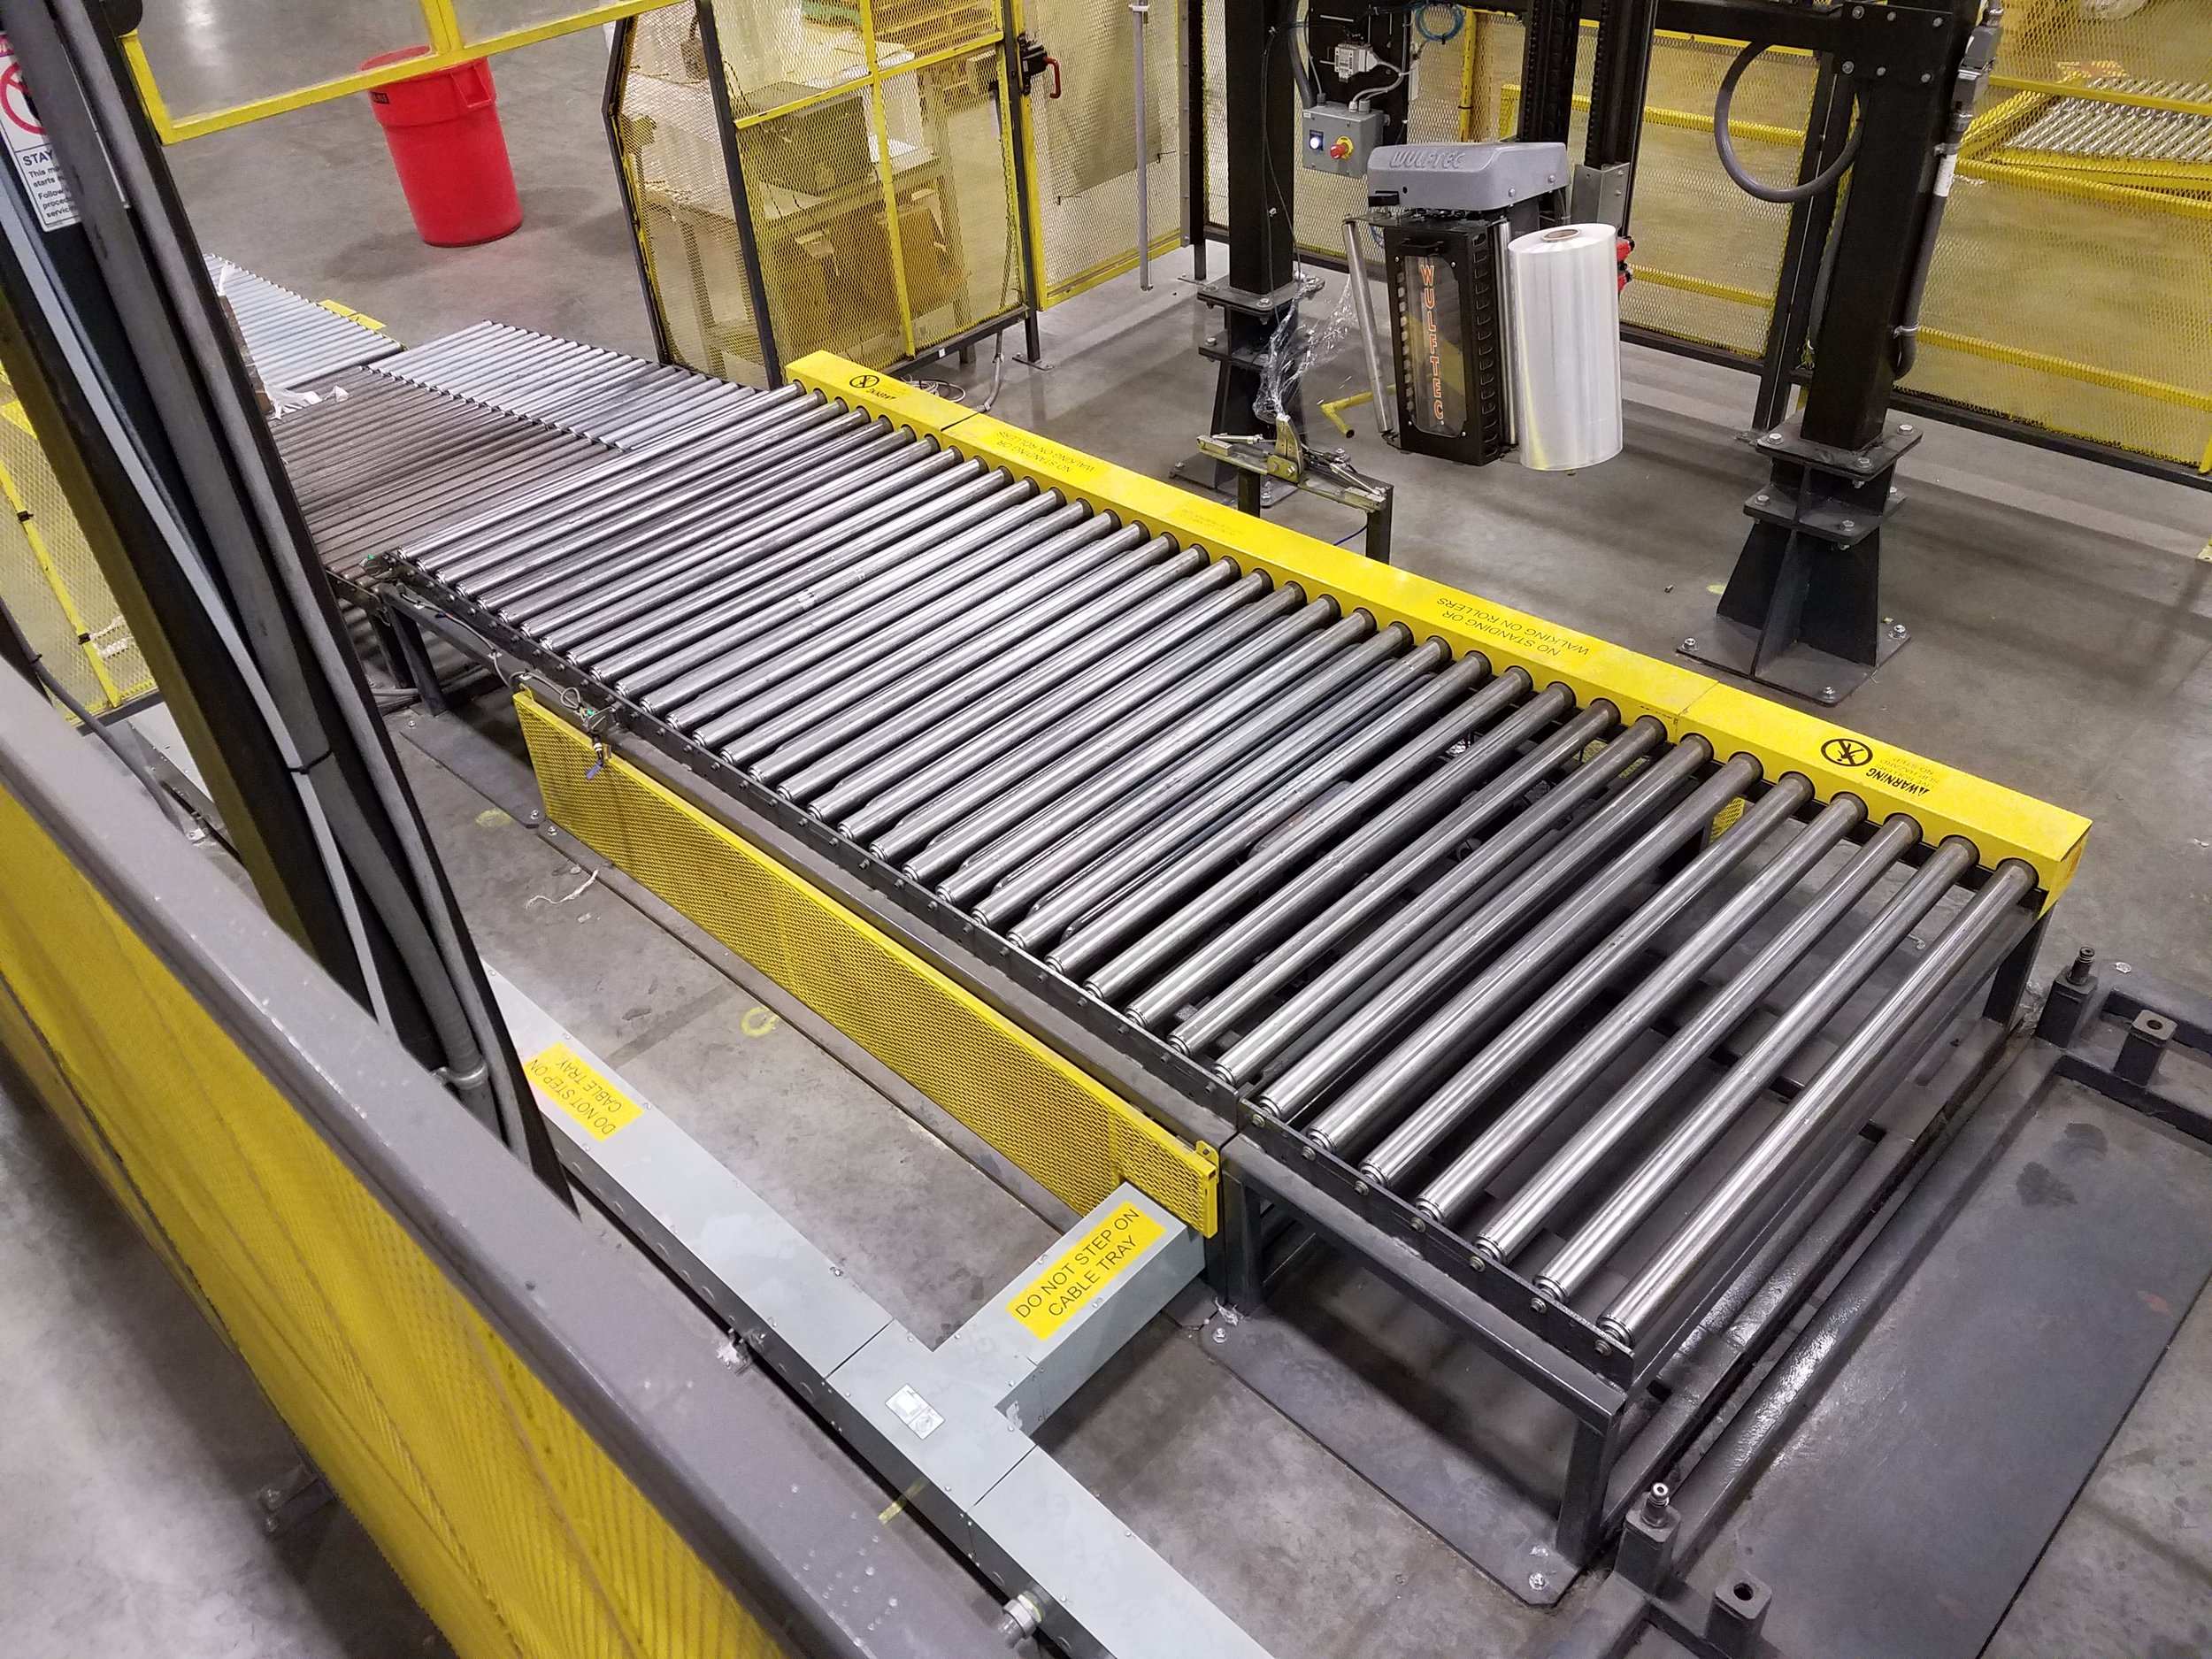 The second wrapper station conveyor